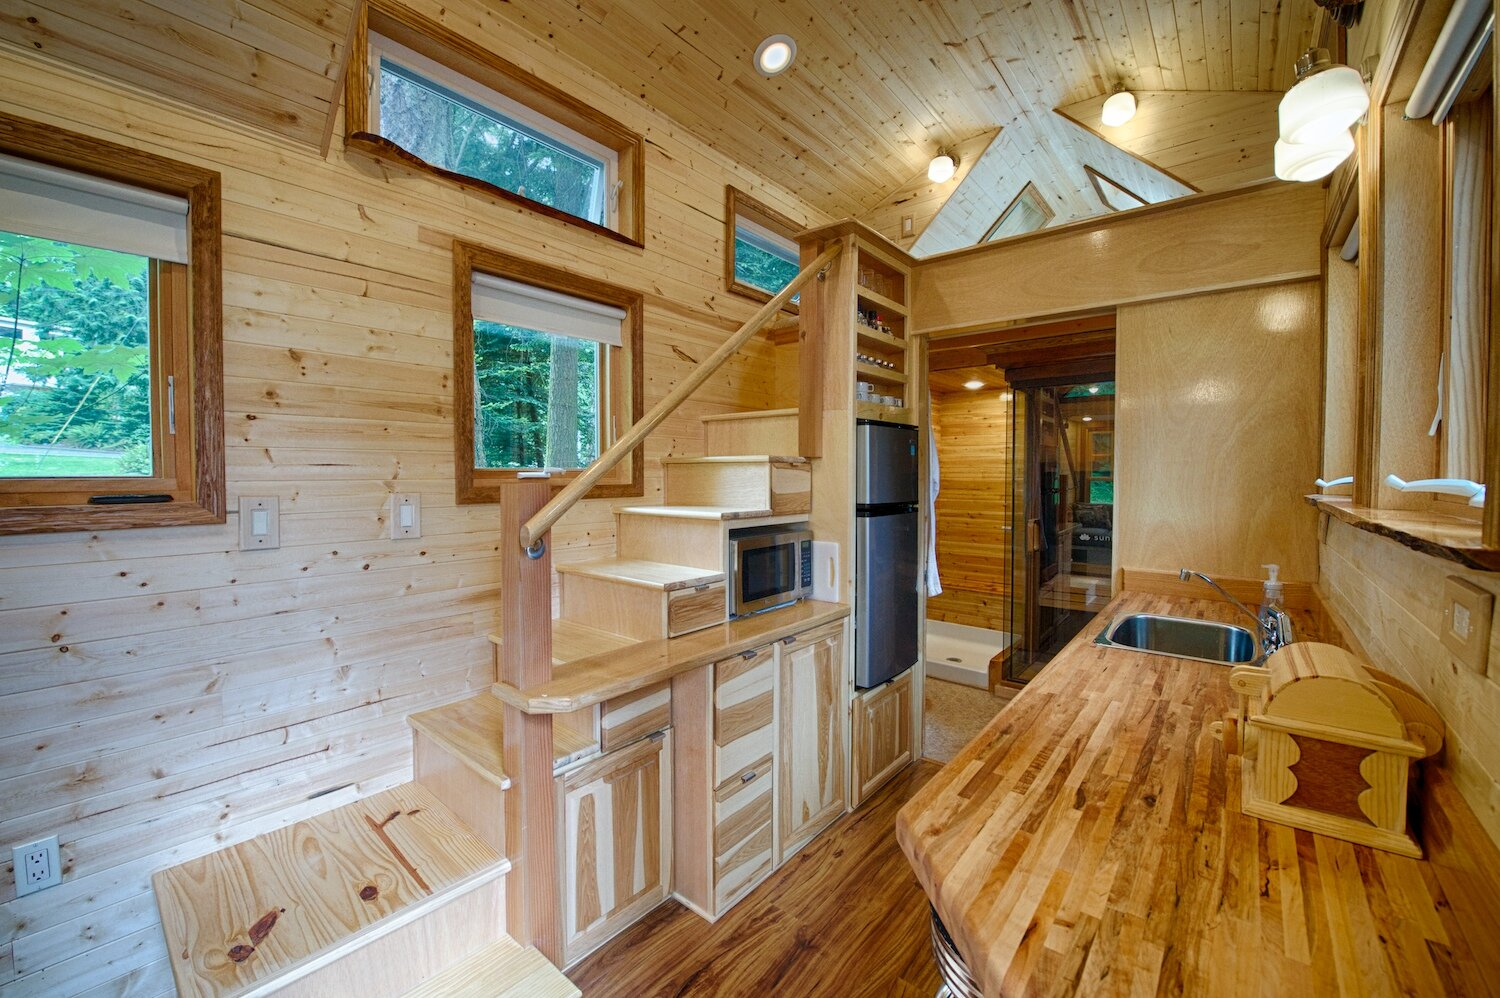 A tiny house with a sauna hope island cottages for Small house design inside and outside